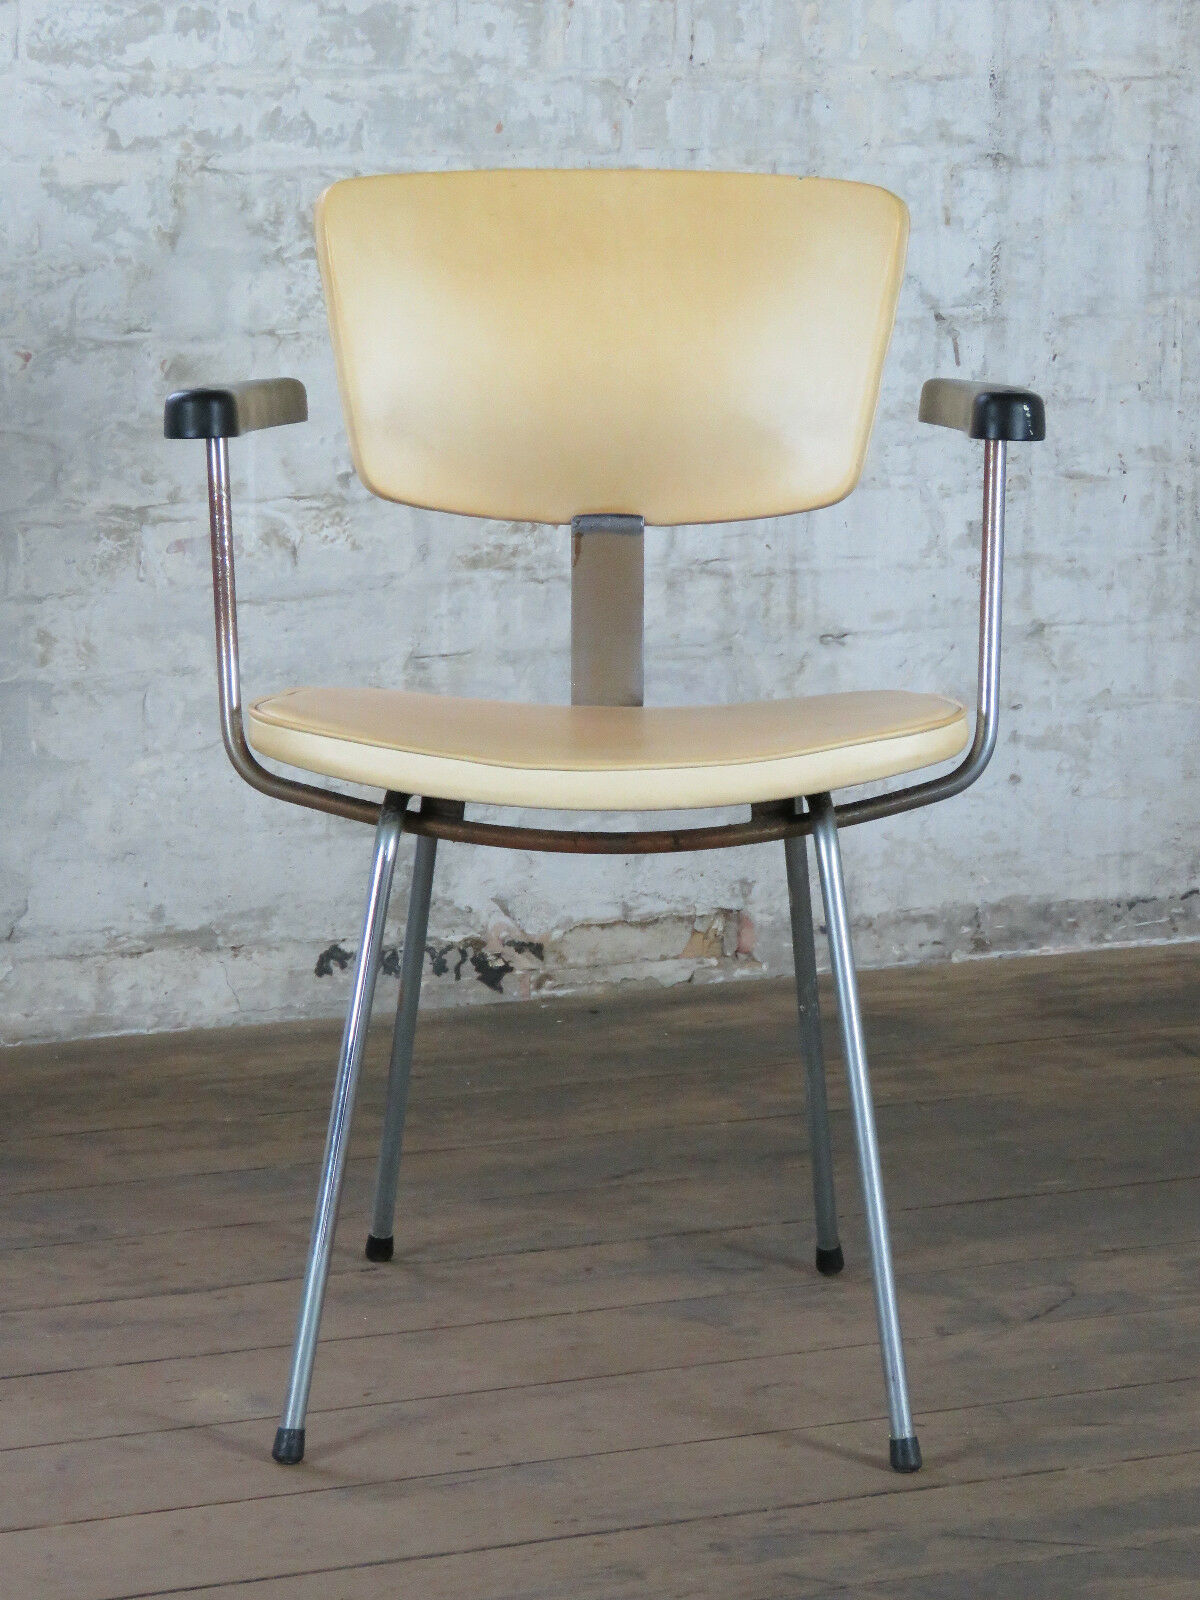 Mid Century Retro Cocktail Arm Desk Chair Armchair Stuhl Vintage 50s 60s